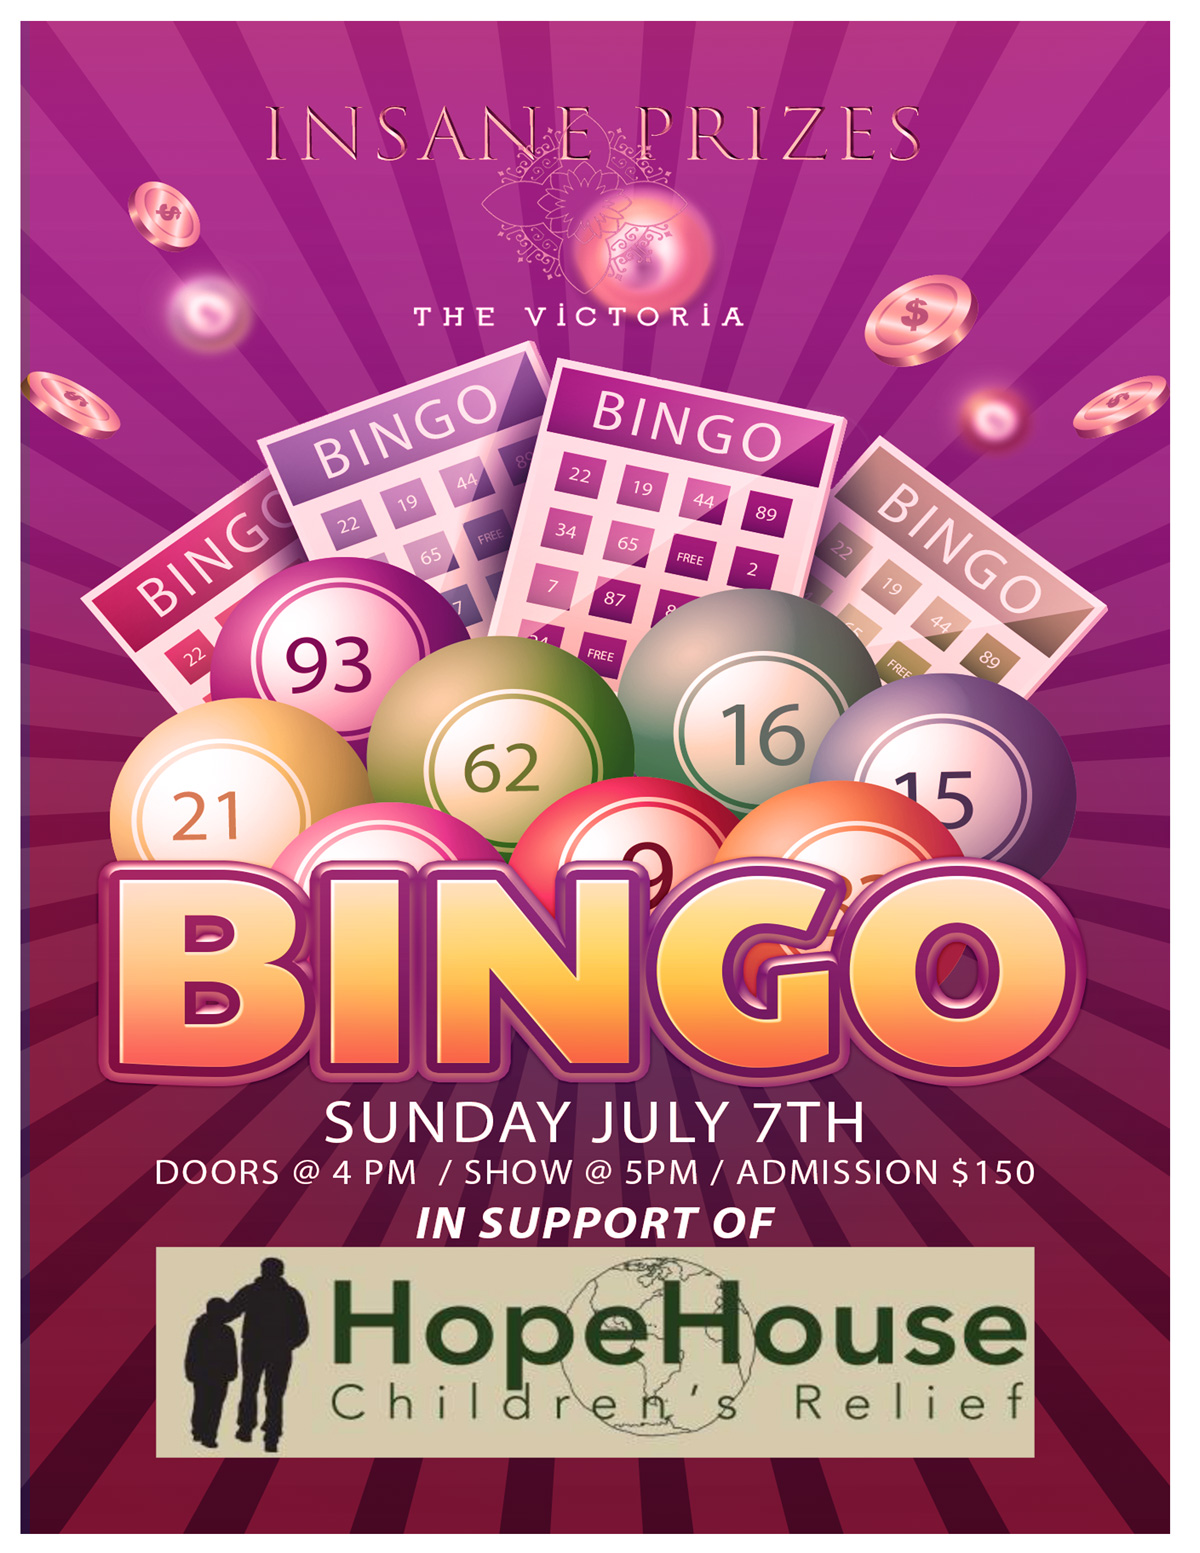 Bingo Fundraiser in Support of Hope House